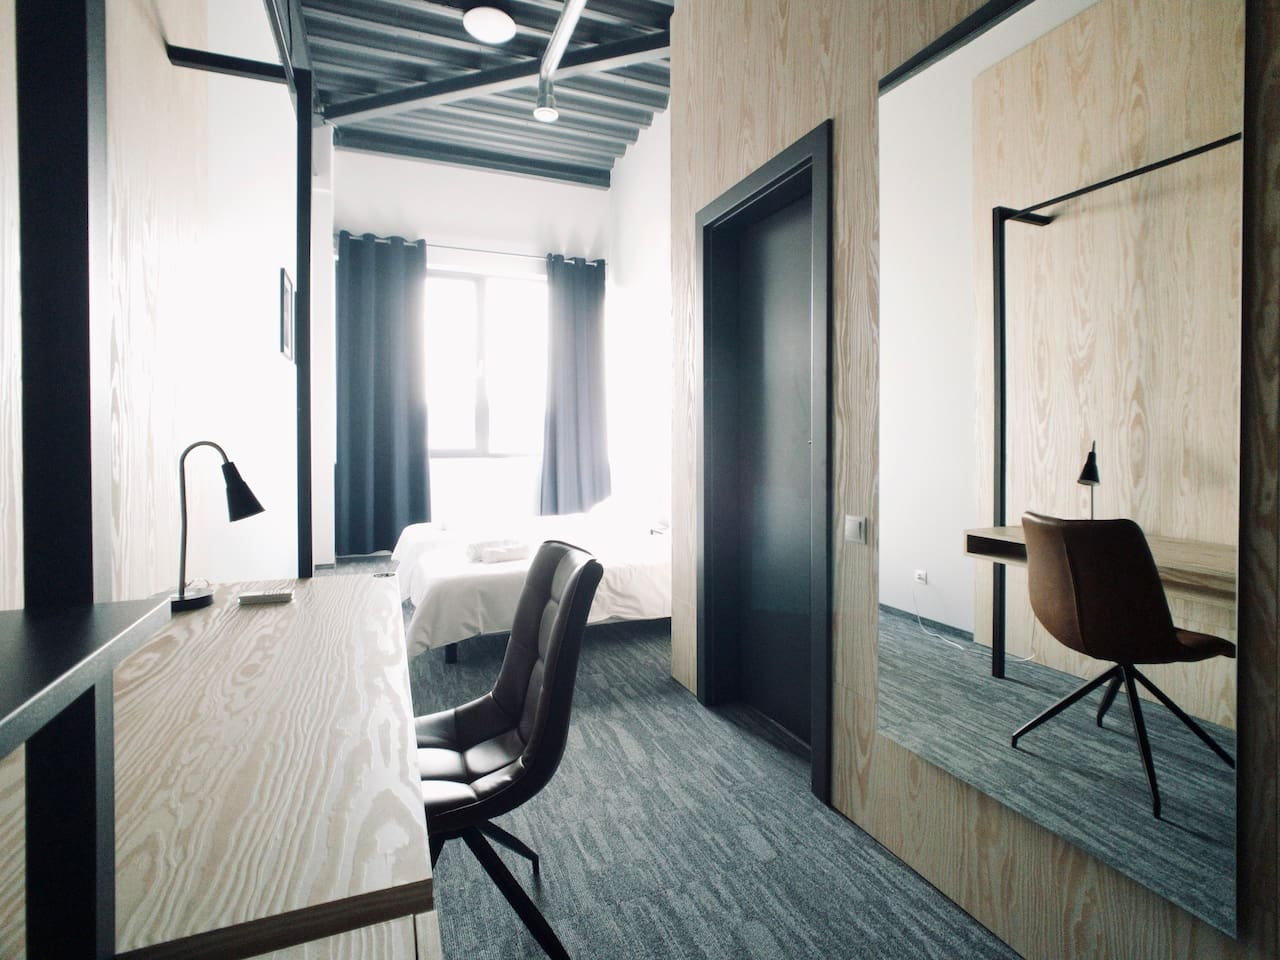 Private room with two single beds, with private restroom.